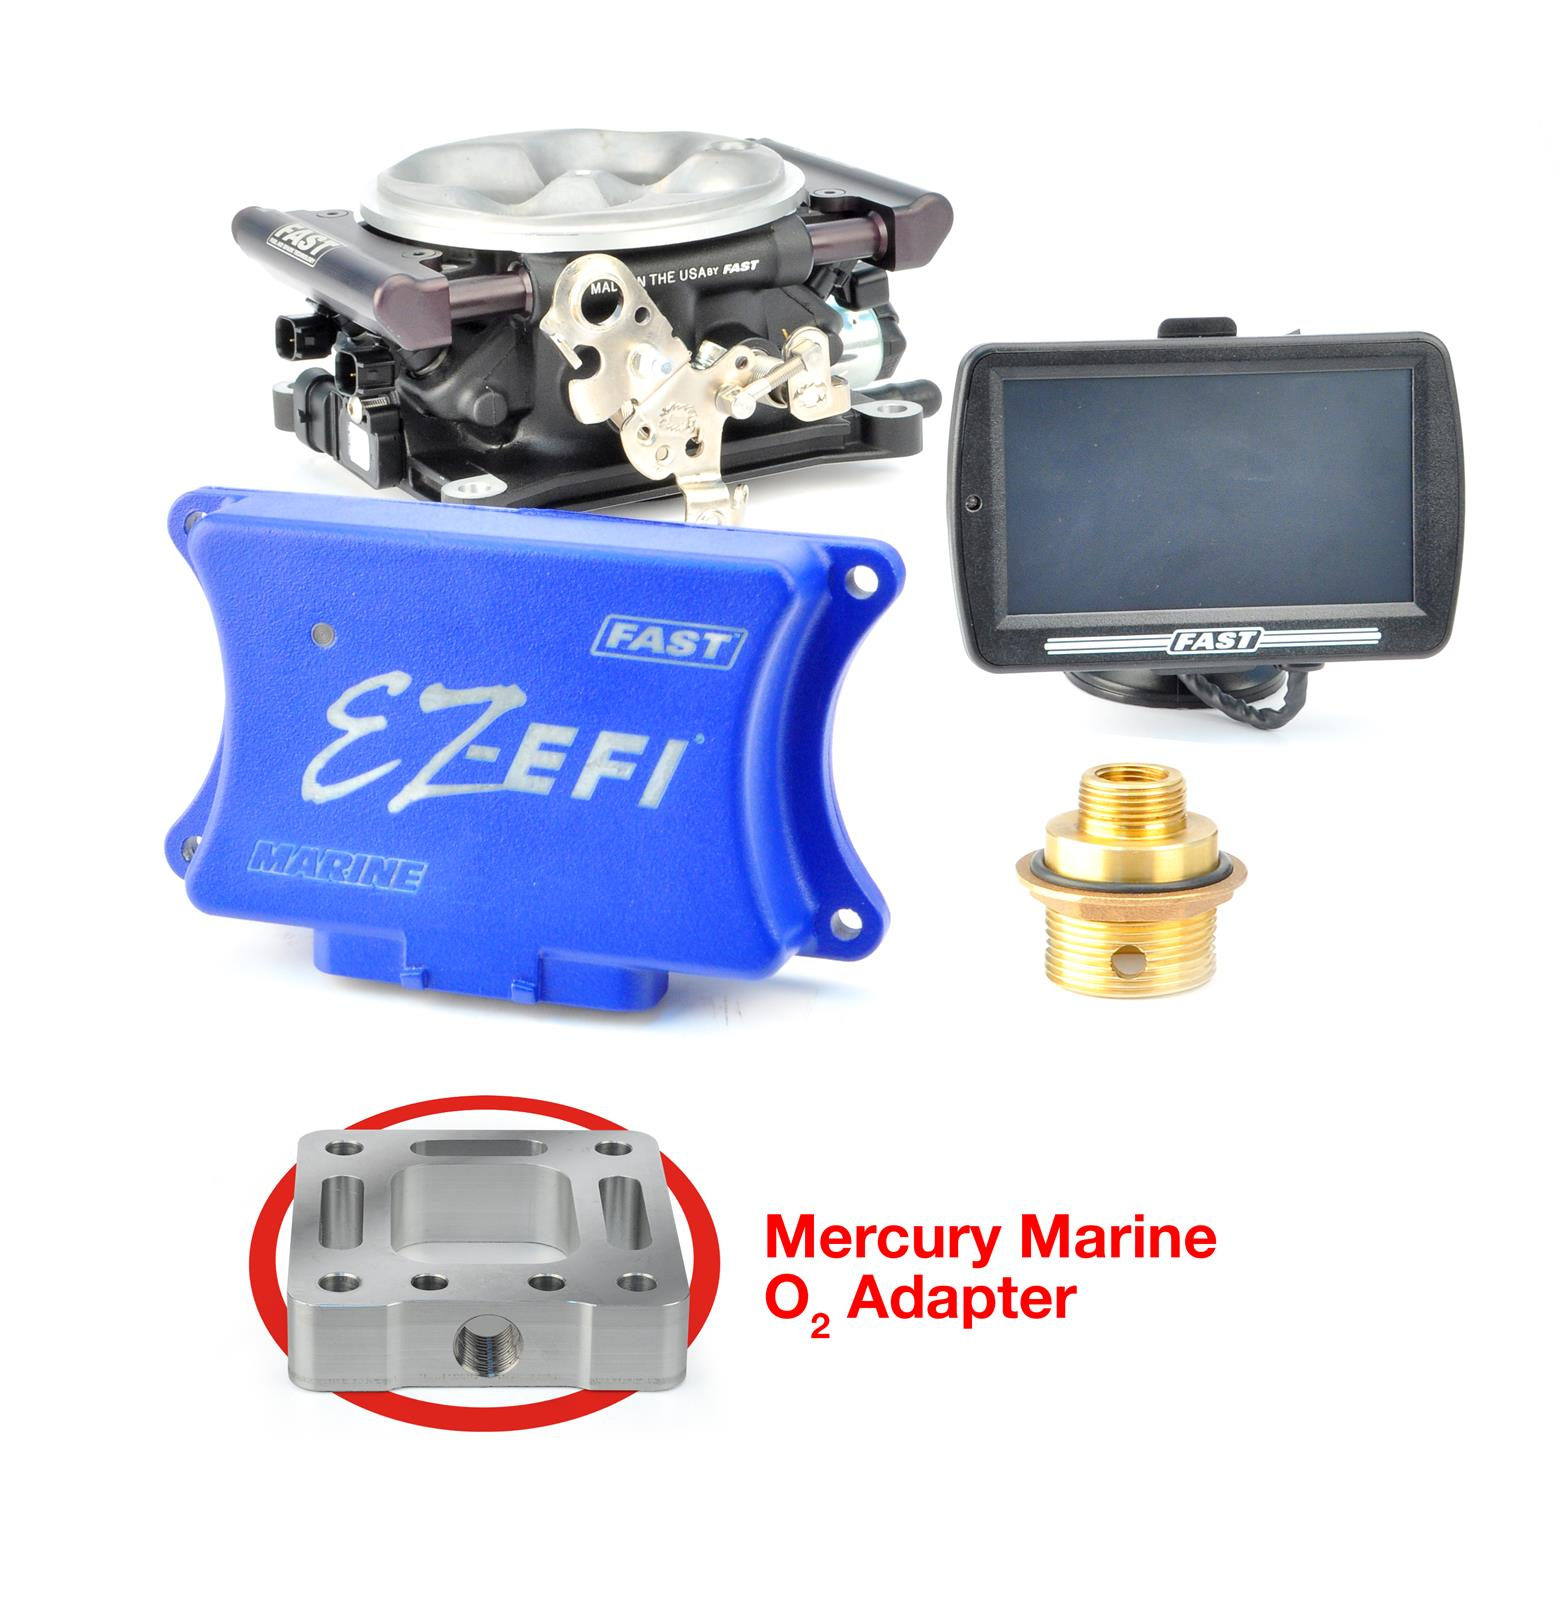 FAST EZ-EFI Marine Base Kit Fuel Injection Systems 30364-06KIT